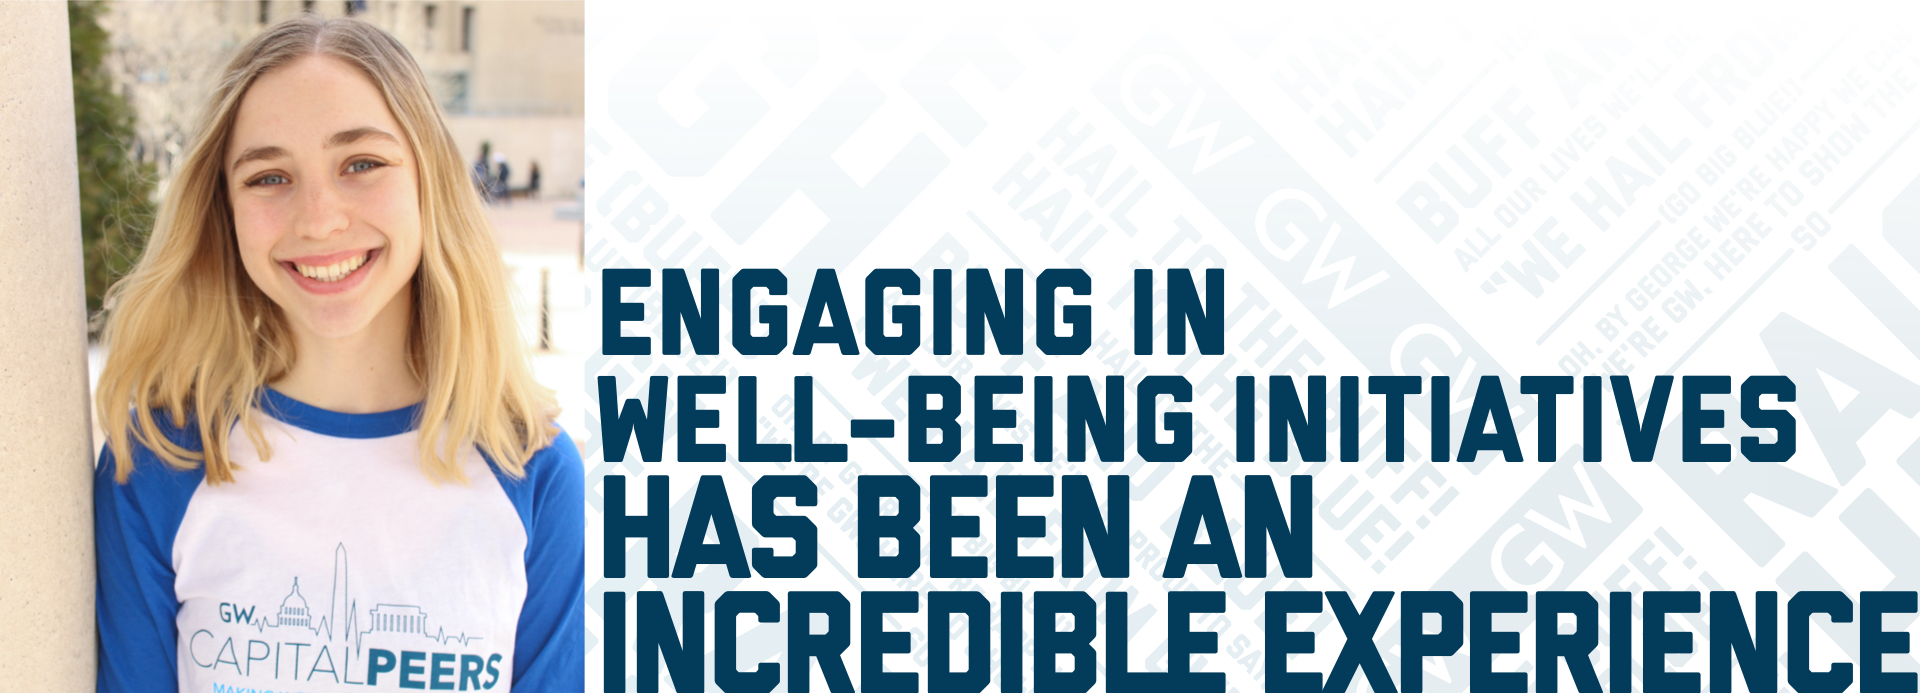 Engaging in Well-being Initiatives has been an incredible experience